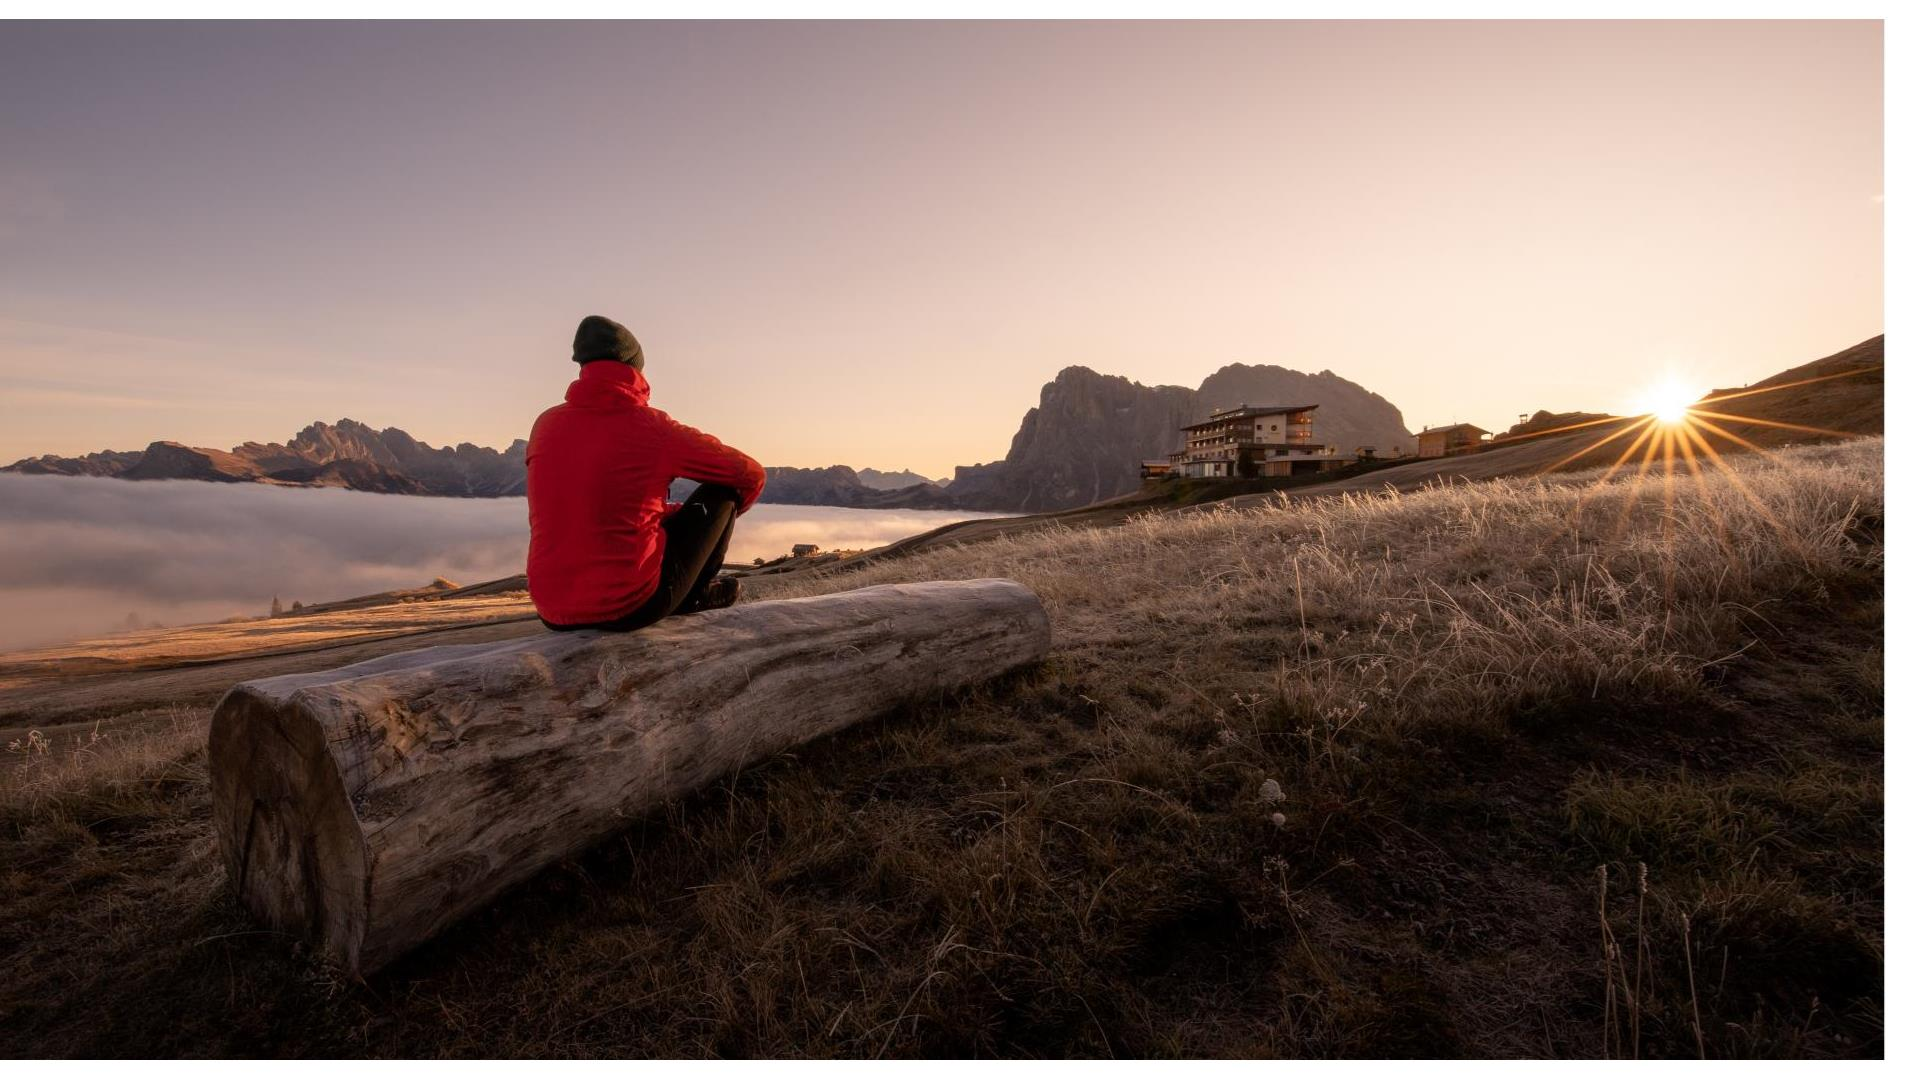 hotel-goldknopf-seiser-alm-herbst-sonnenaufgang-patrick-10